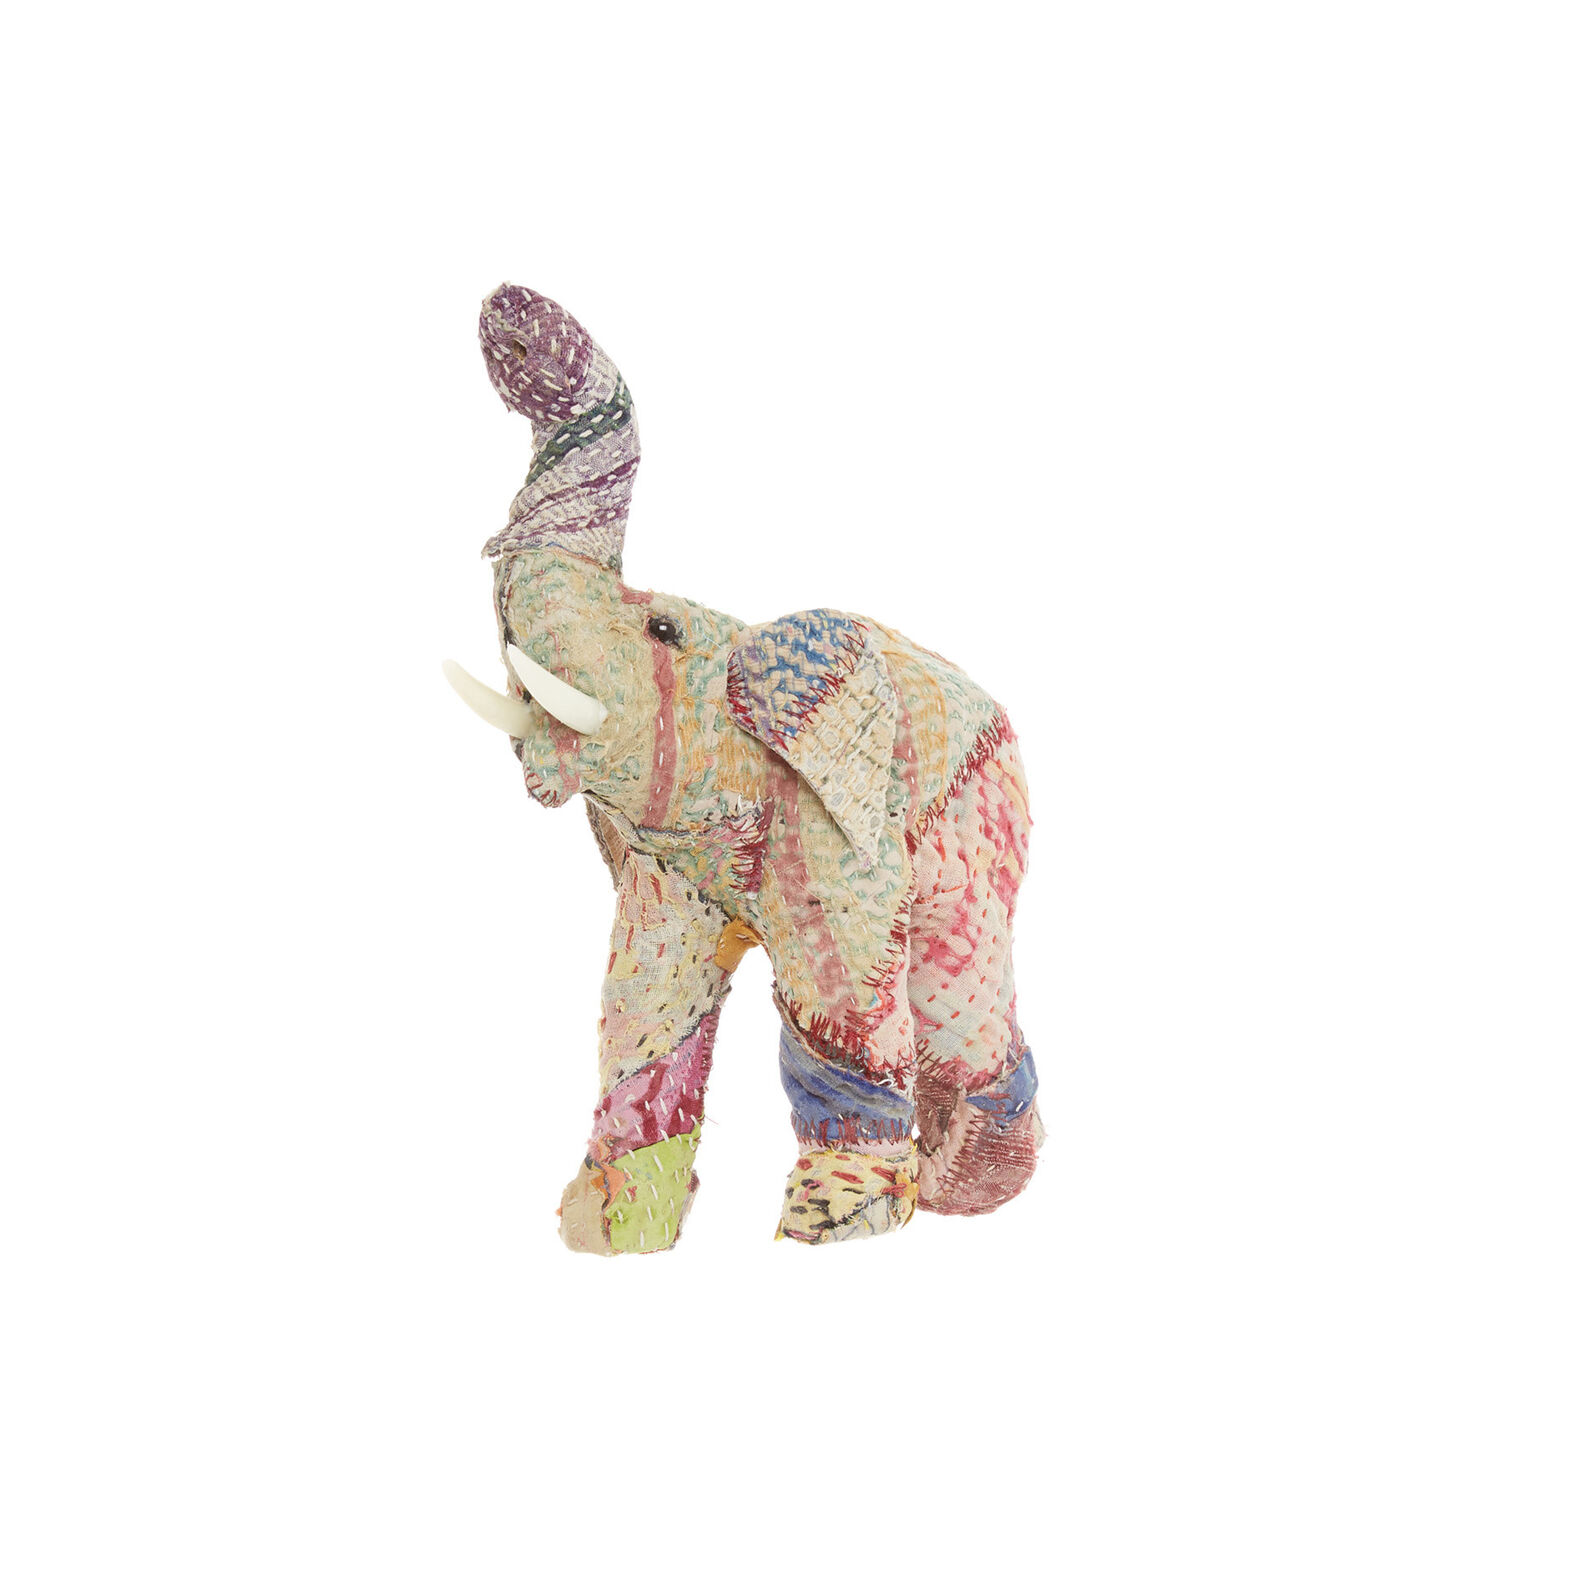 Hand-made elephant in recycled material